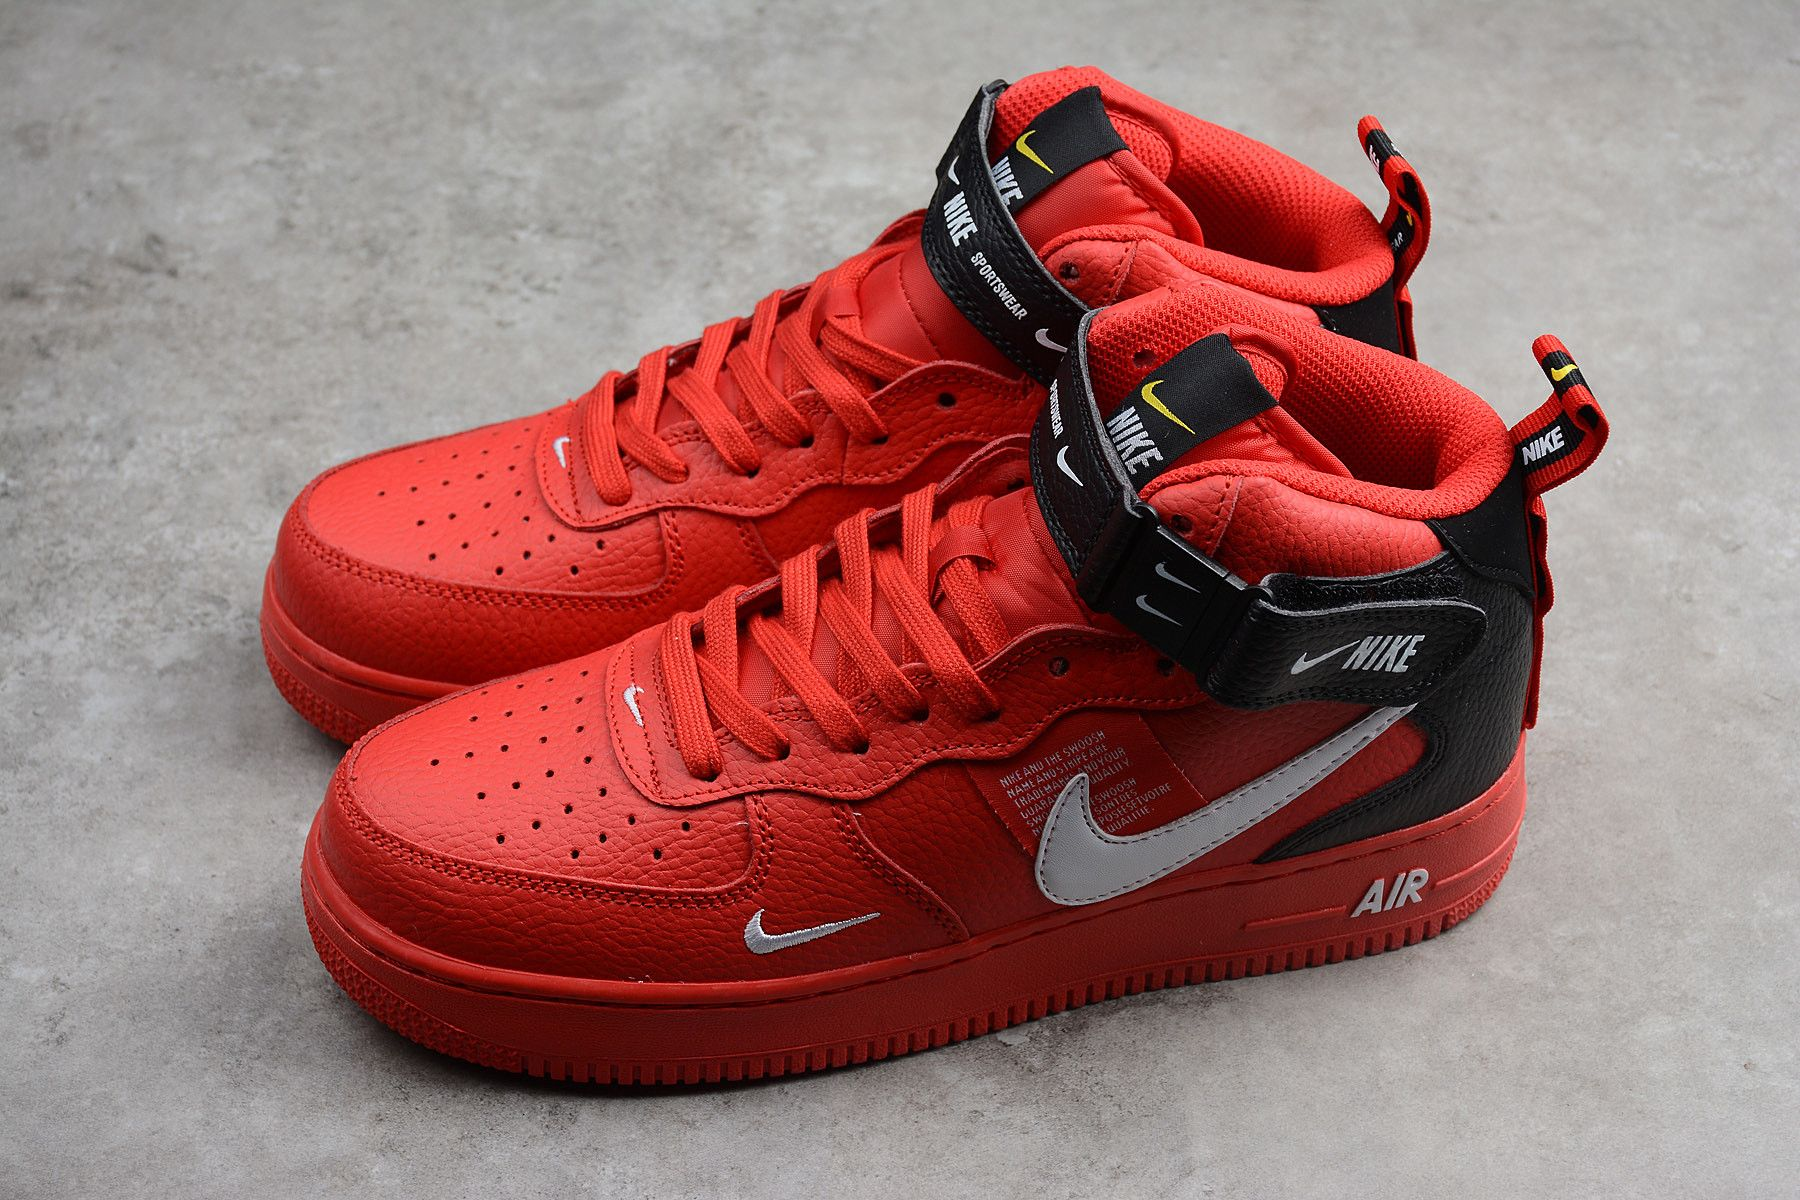 Wholesale Nike Air Force 1 Mid 07 Leather High Discount Sale